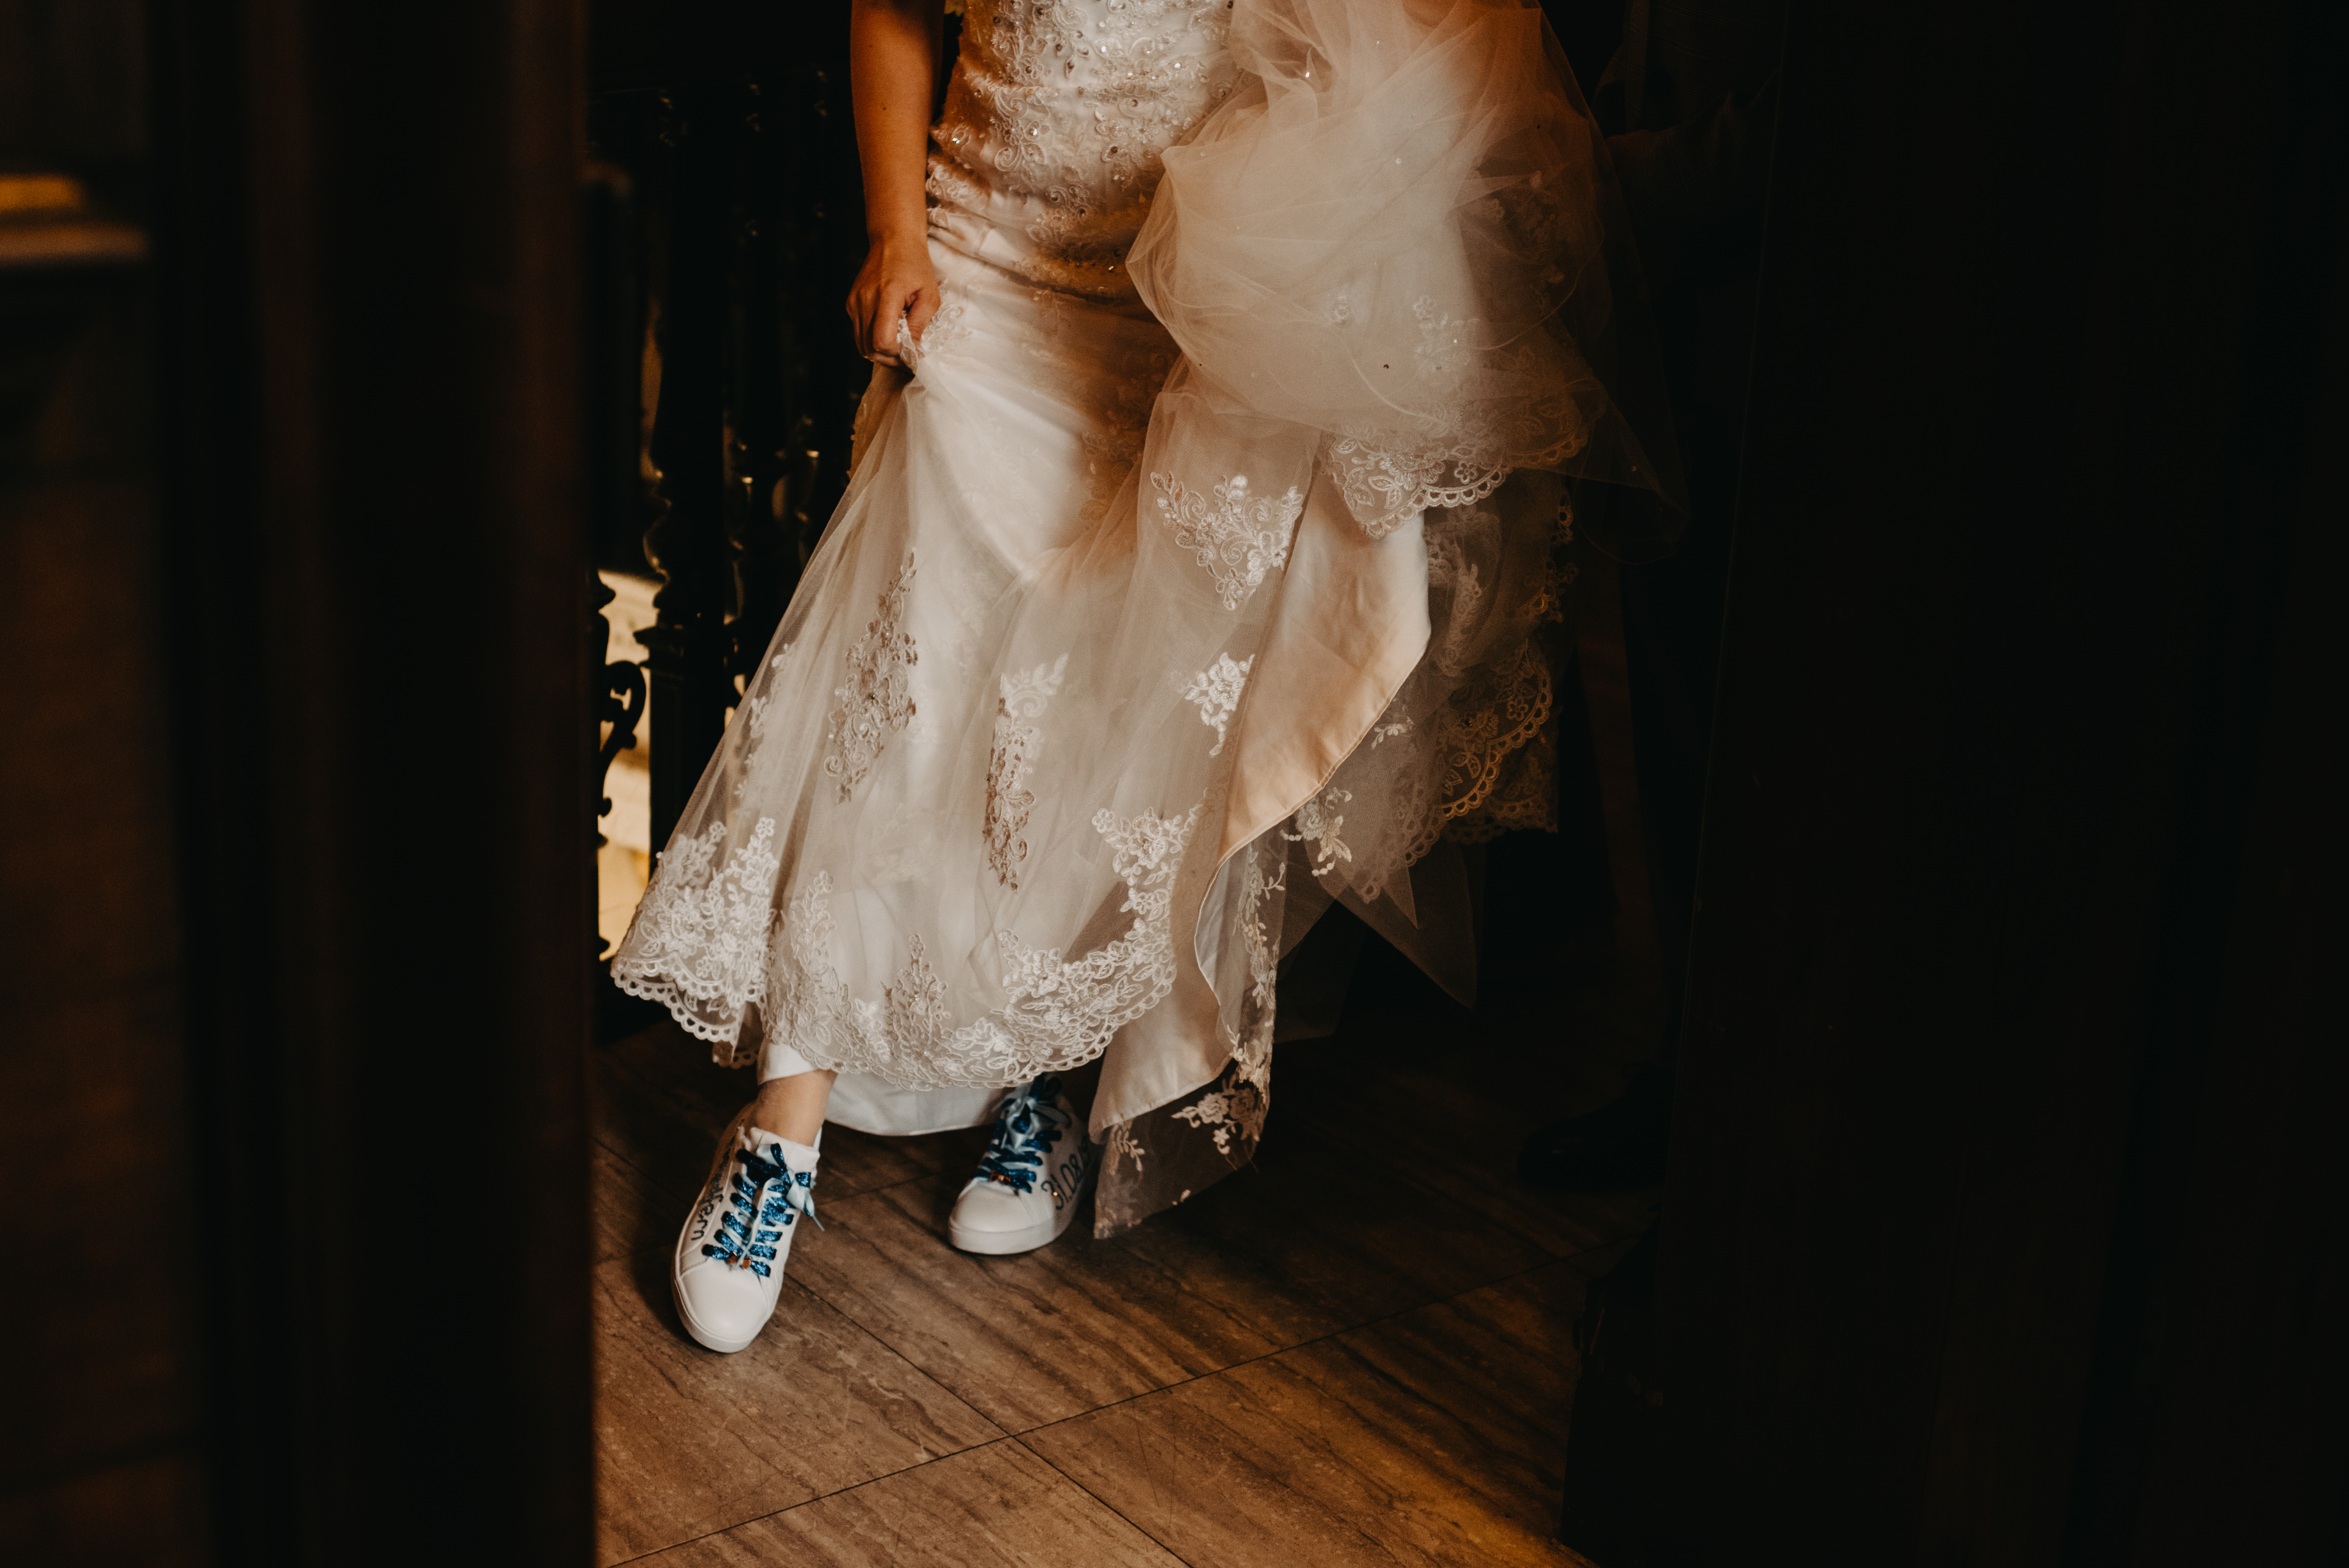 The bride is wearing trainers under her wedding dress